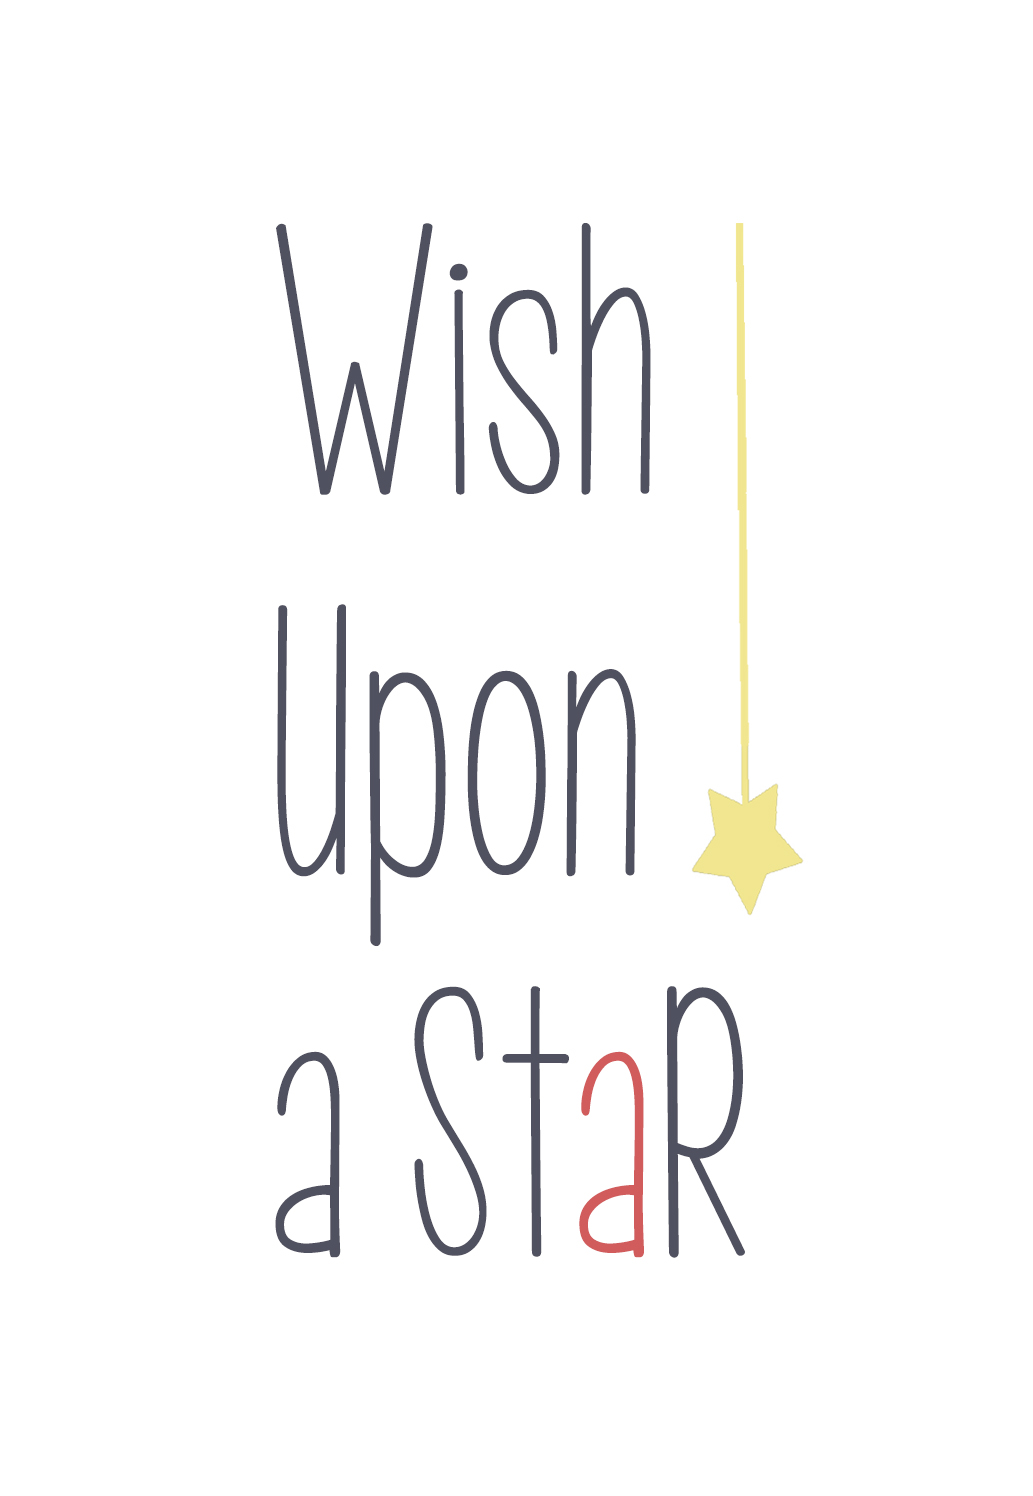 http://wishuponastar.tictail.com/products